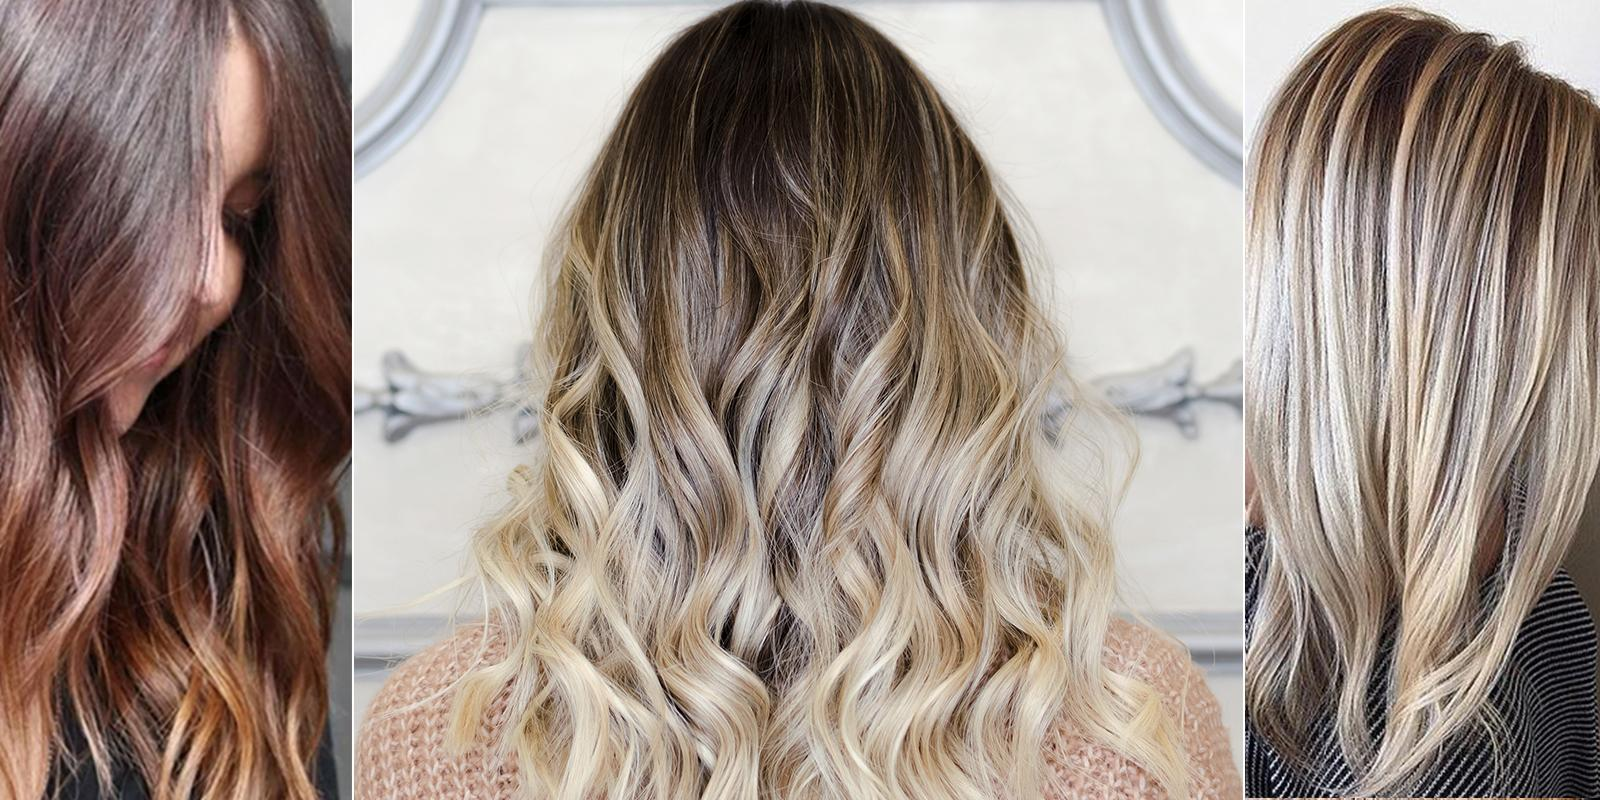 How To Undo Your Ombre Hair